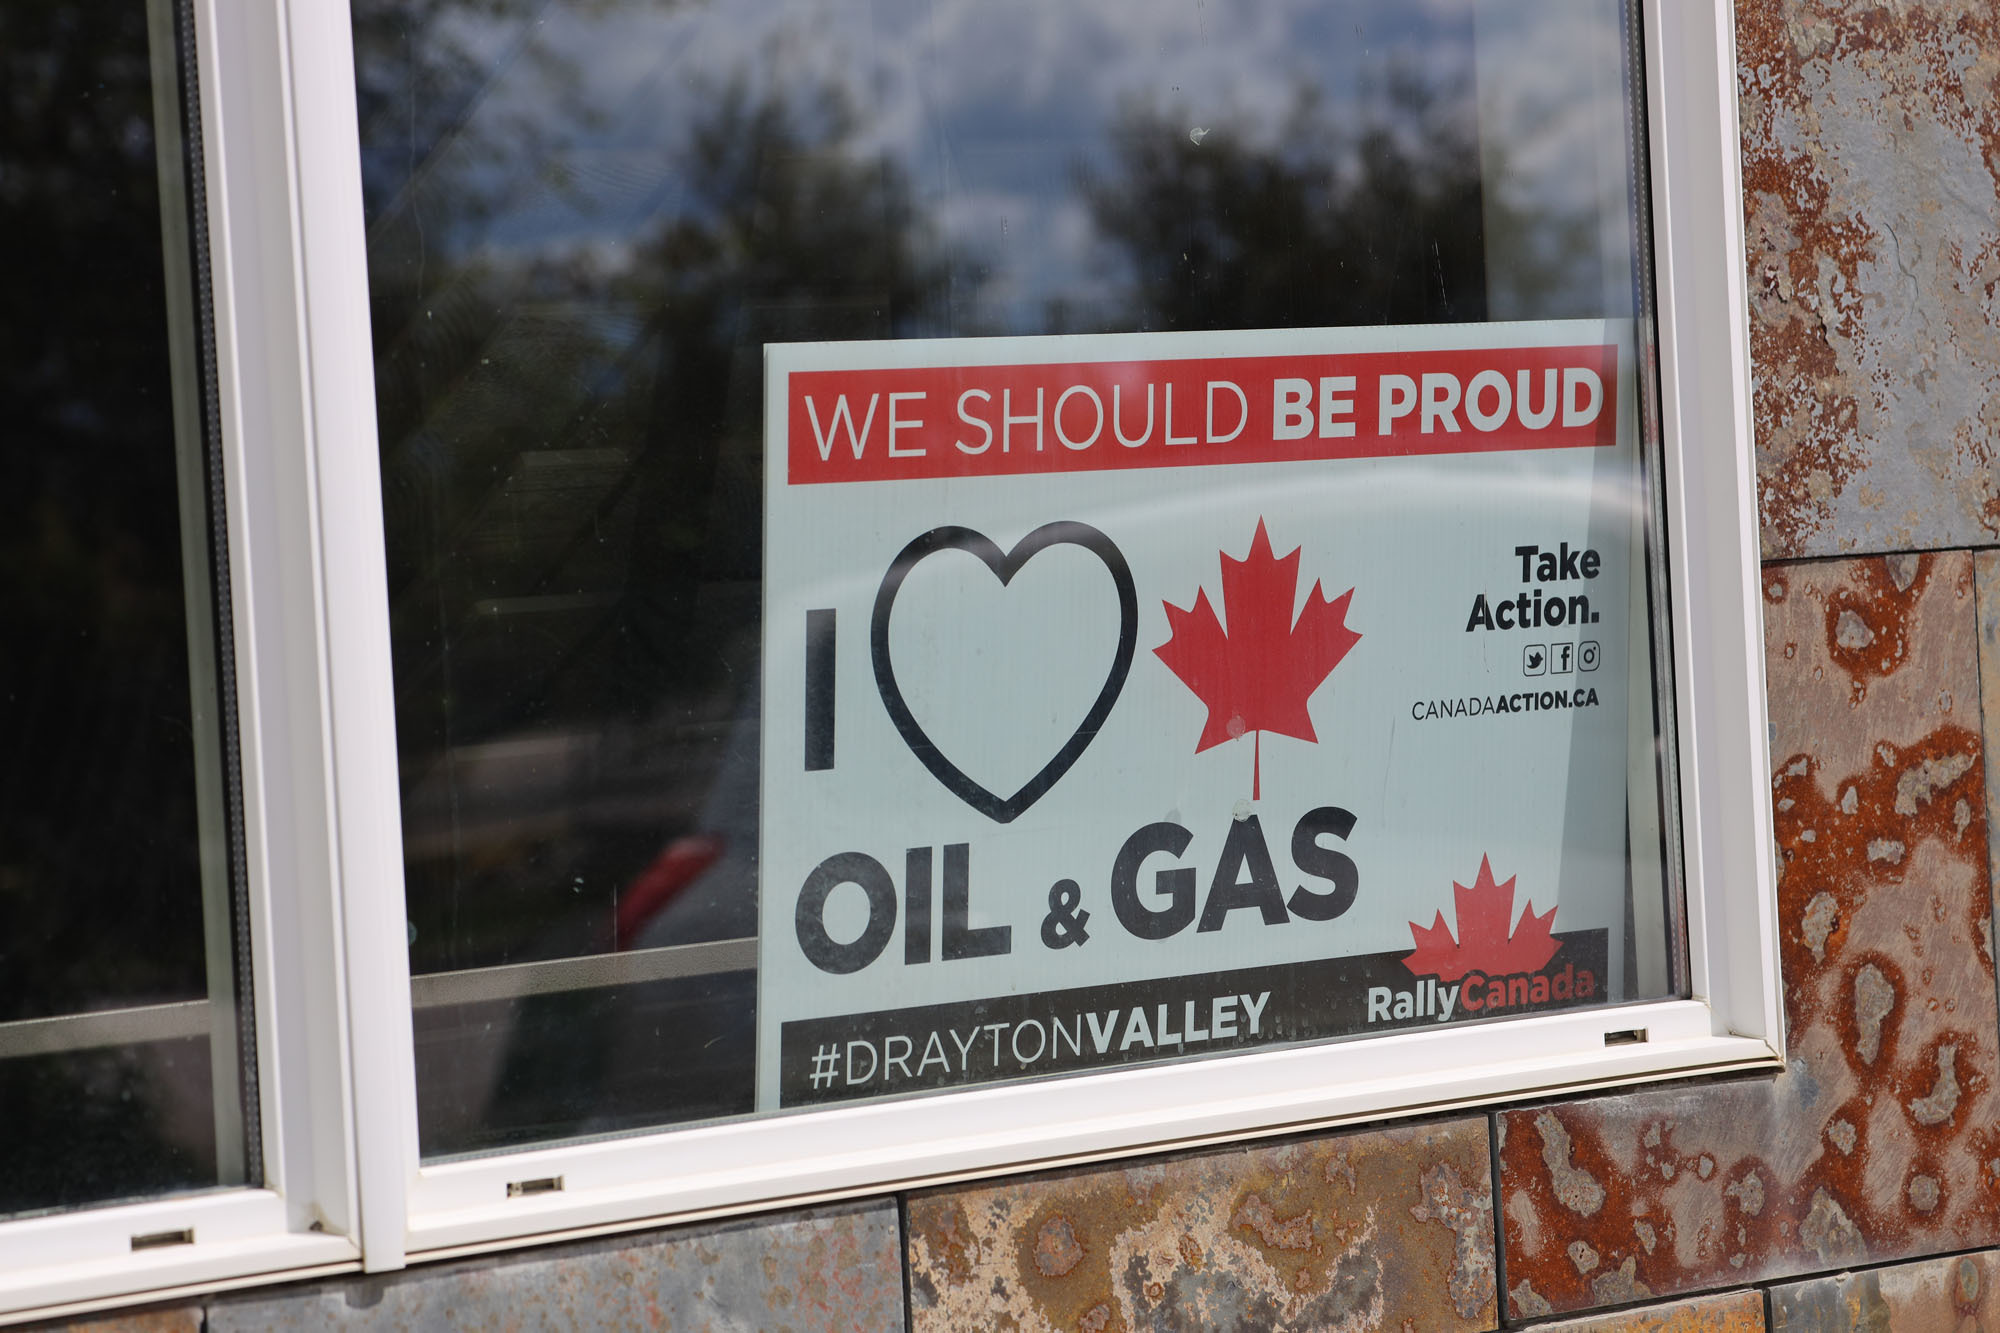 Rally Canada, an advocacy group out of Drayton Valley, was founded in the fall of 2018. (Kory Siegers/CBC)